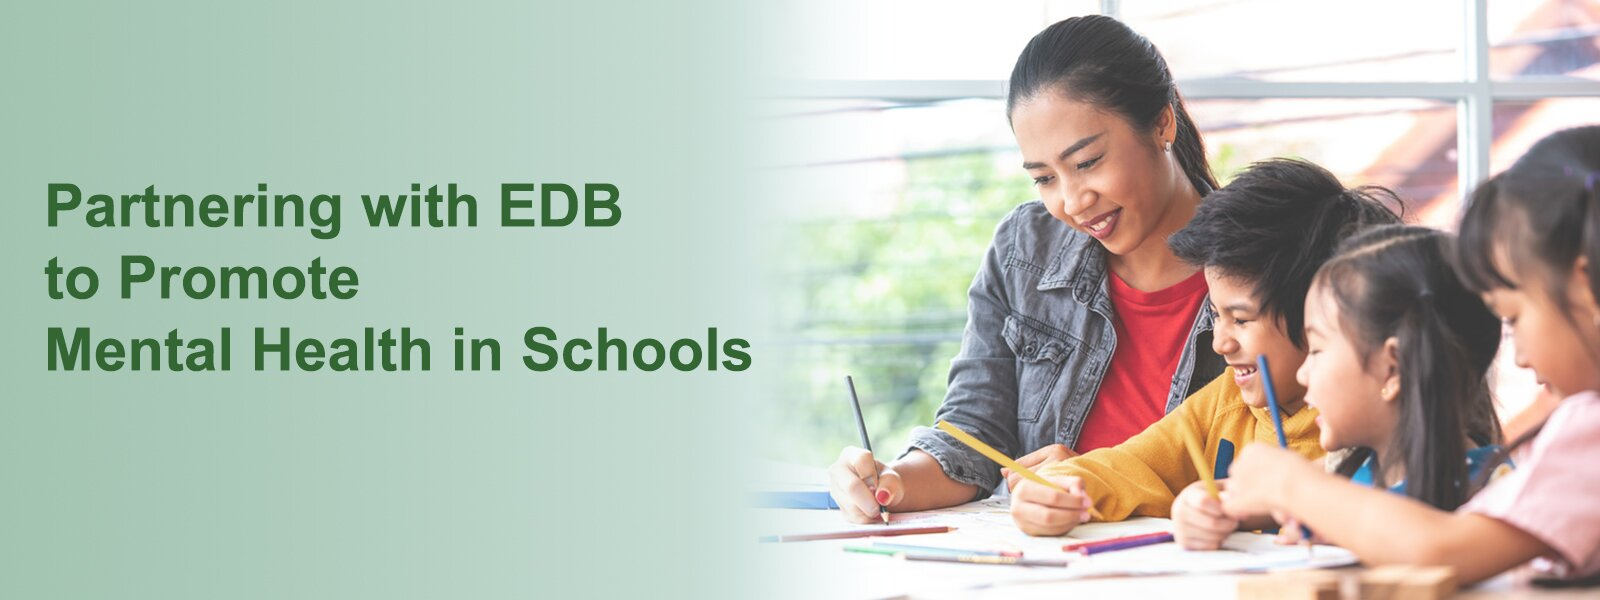 Partnering with EDB to Promote Mental Health in Schools